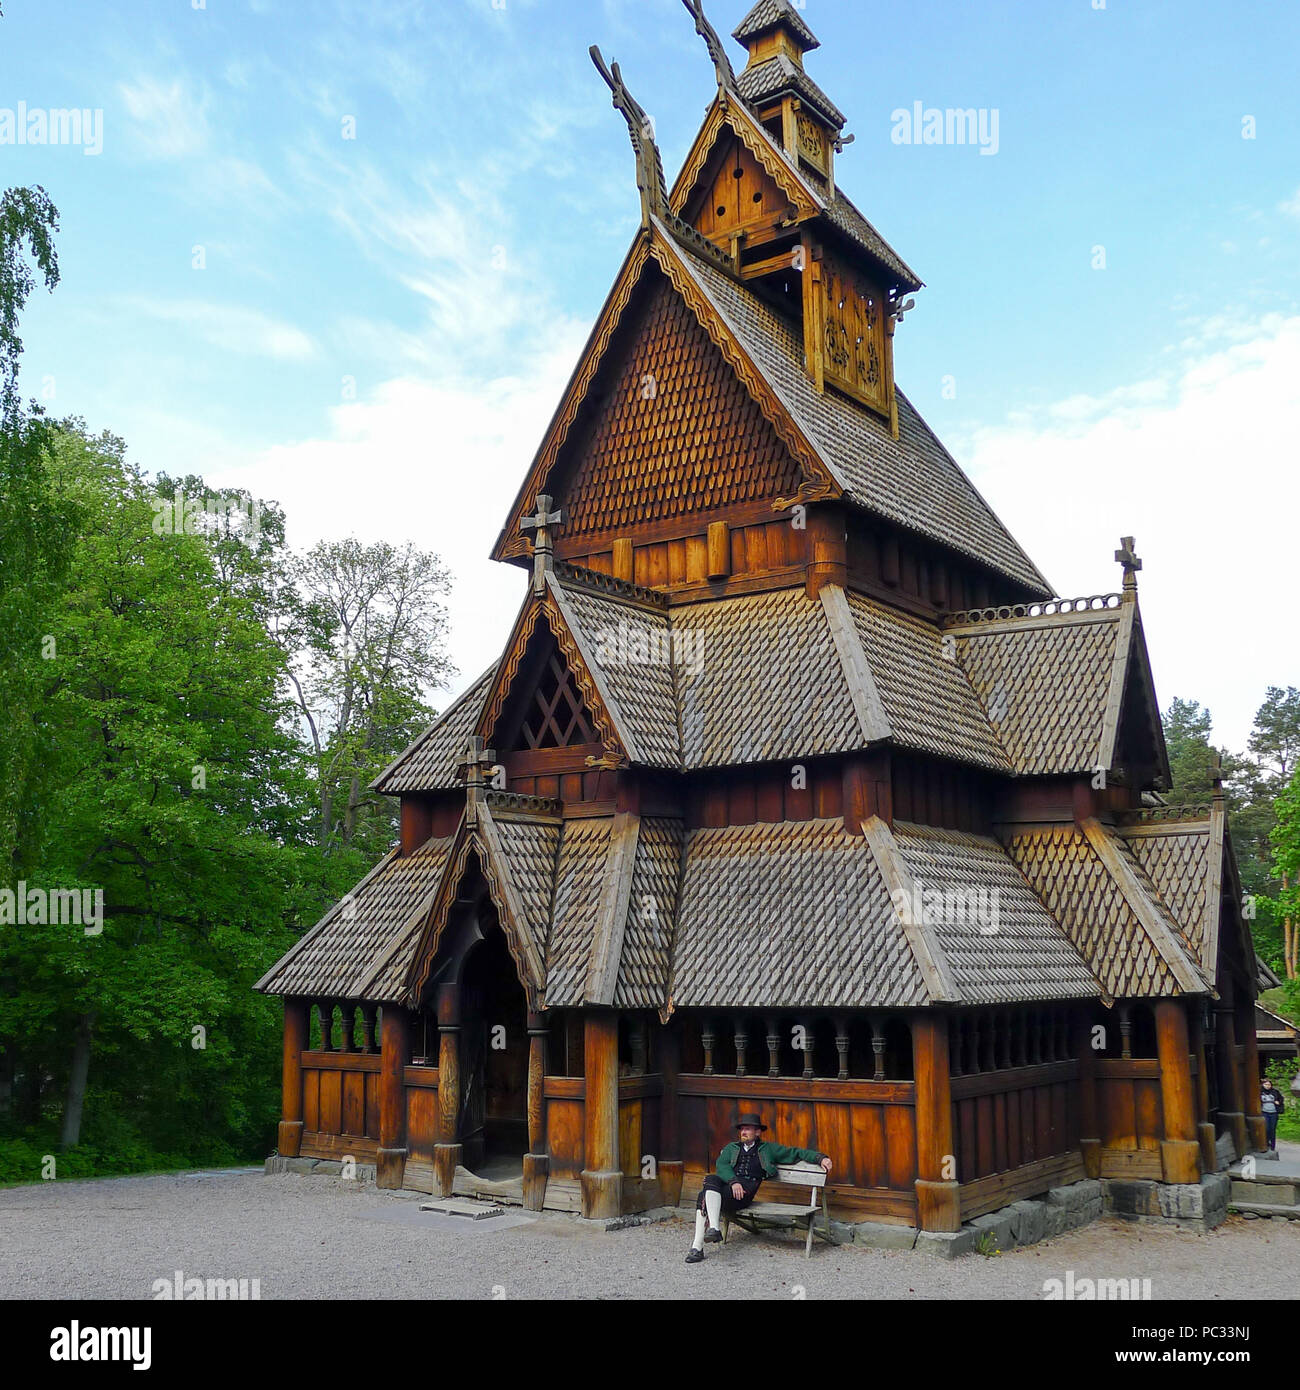 Man in traditional costume sitting in front of the Stave Church from Gol at the Norsk Folkemuseum in Oslo, Norway. - Stock Image